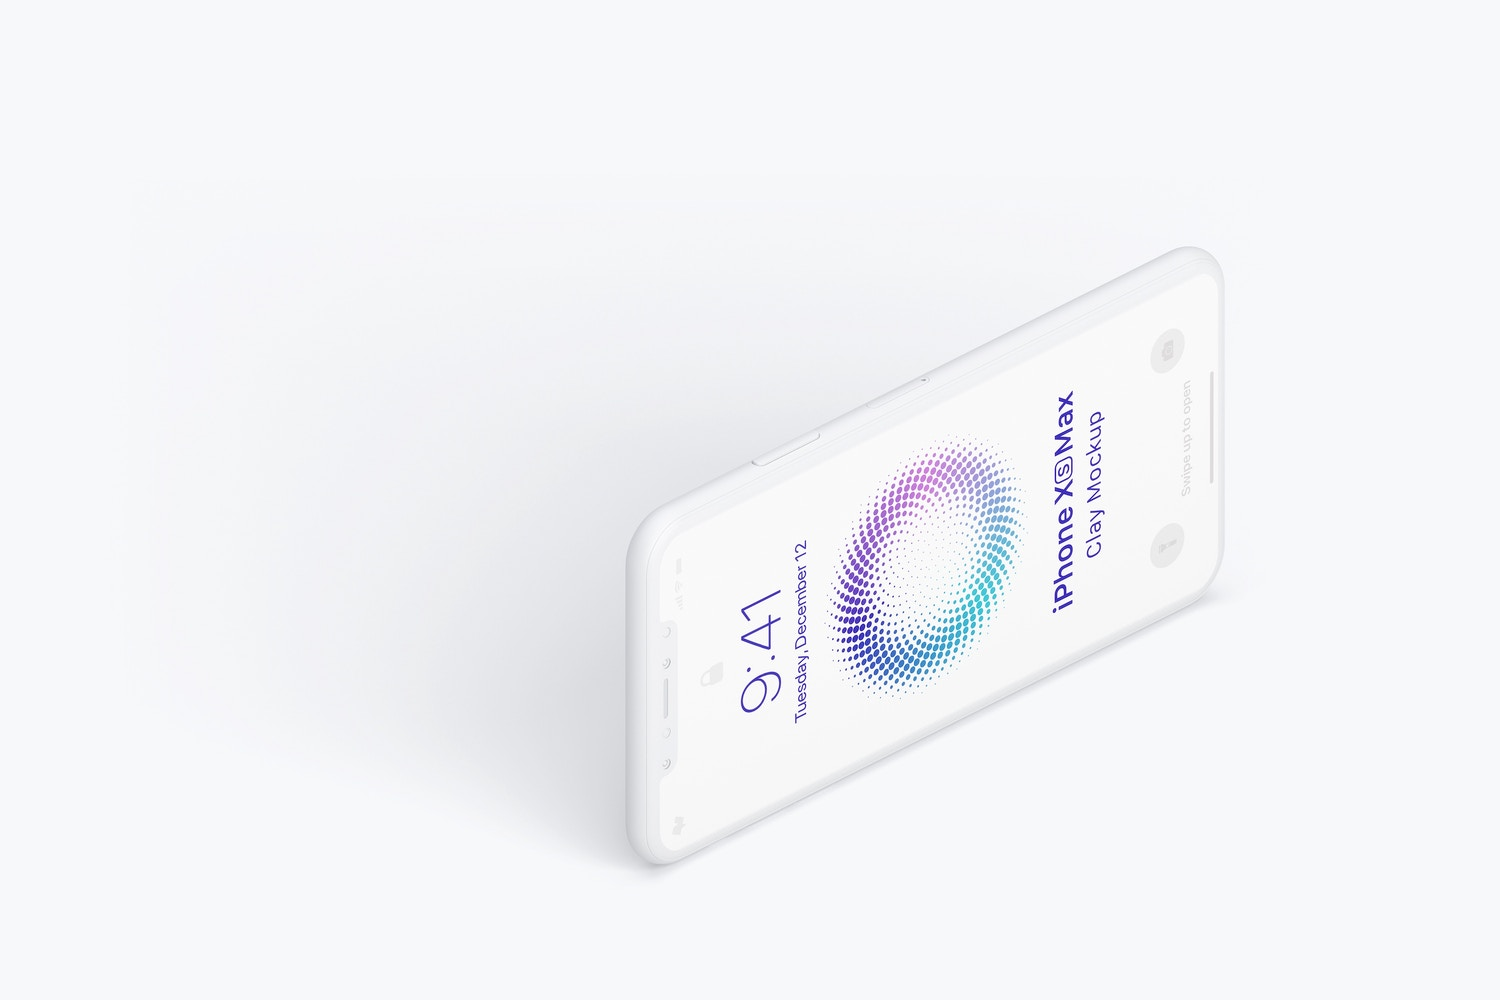 Isometric Clay iPhone XS Max Mockup, Left View 03 (1) by Original Mockups on Original Mockups